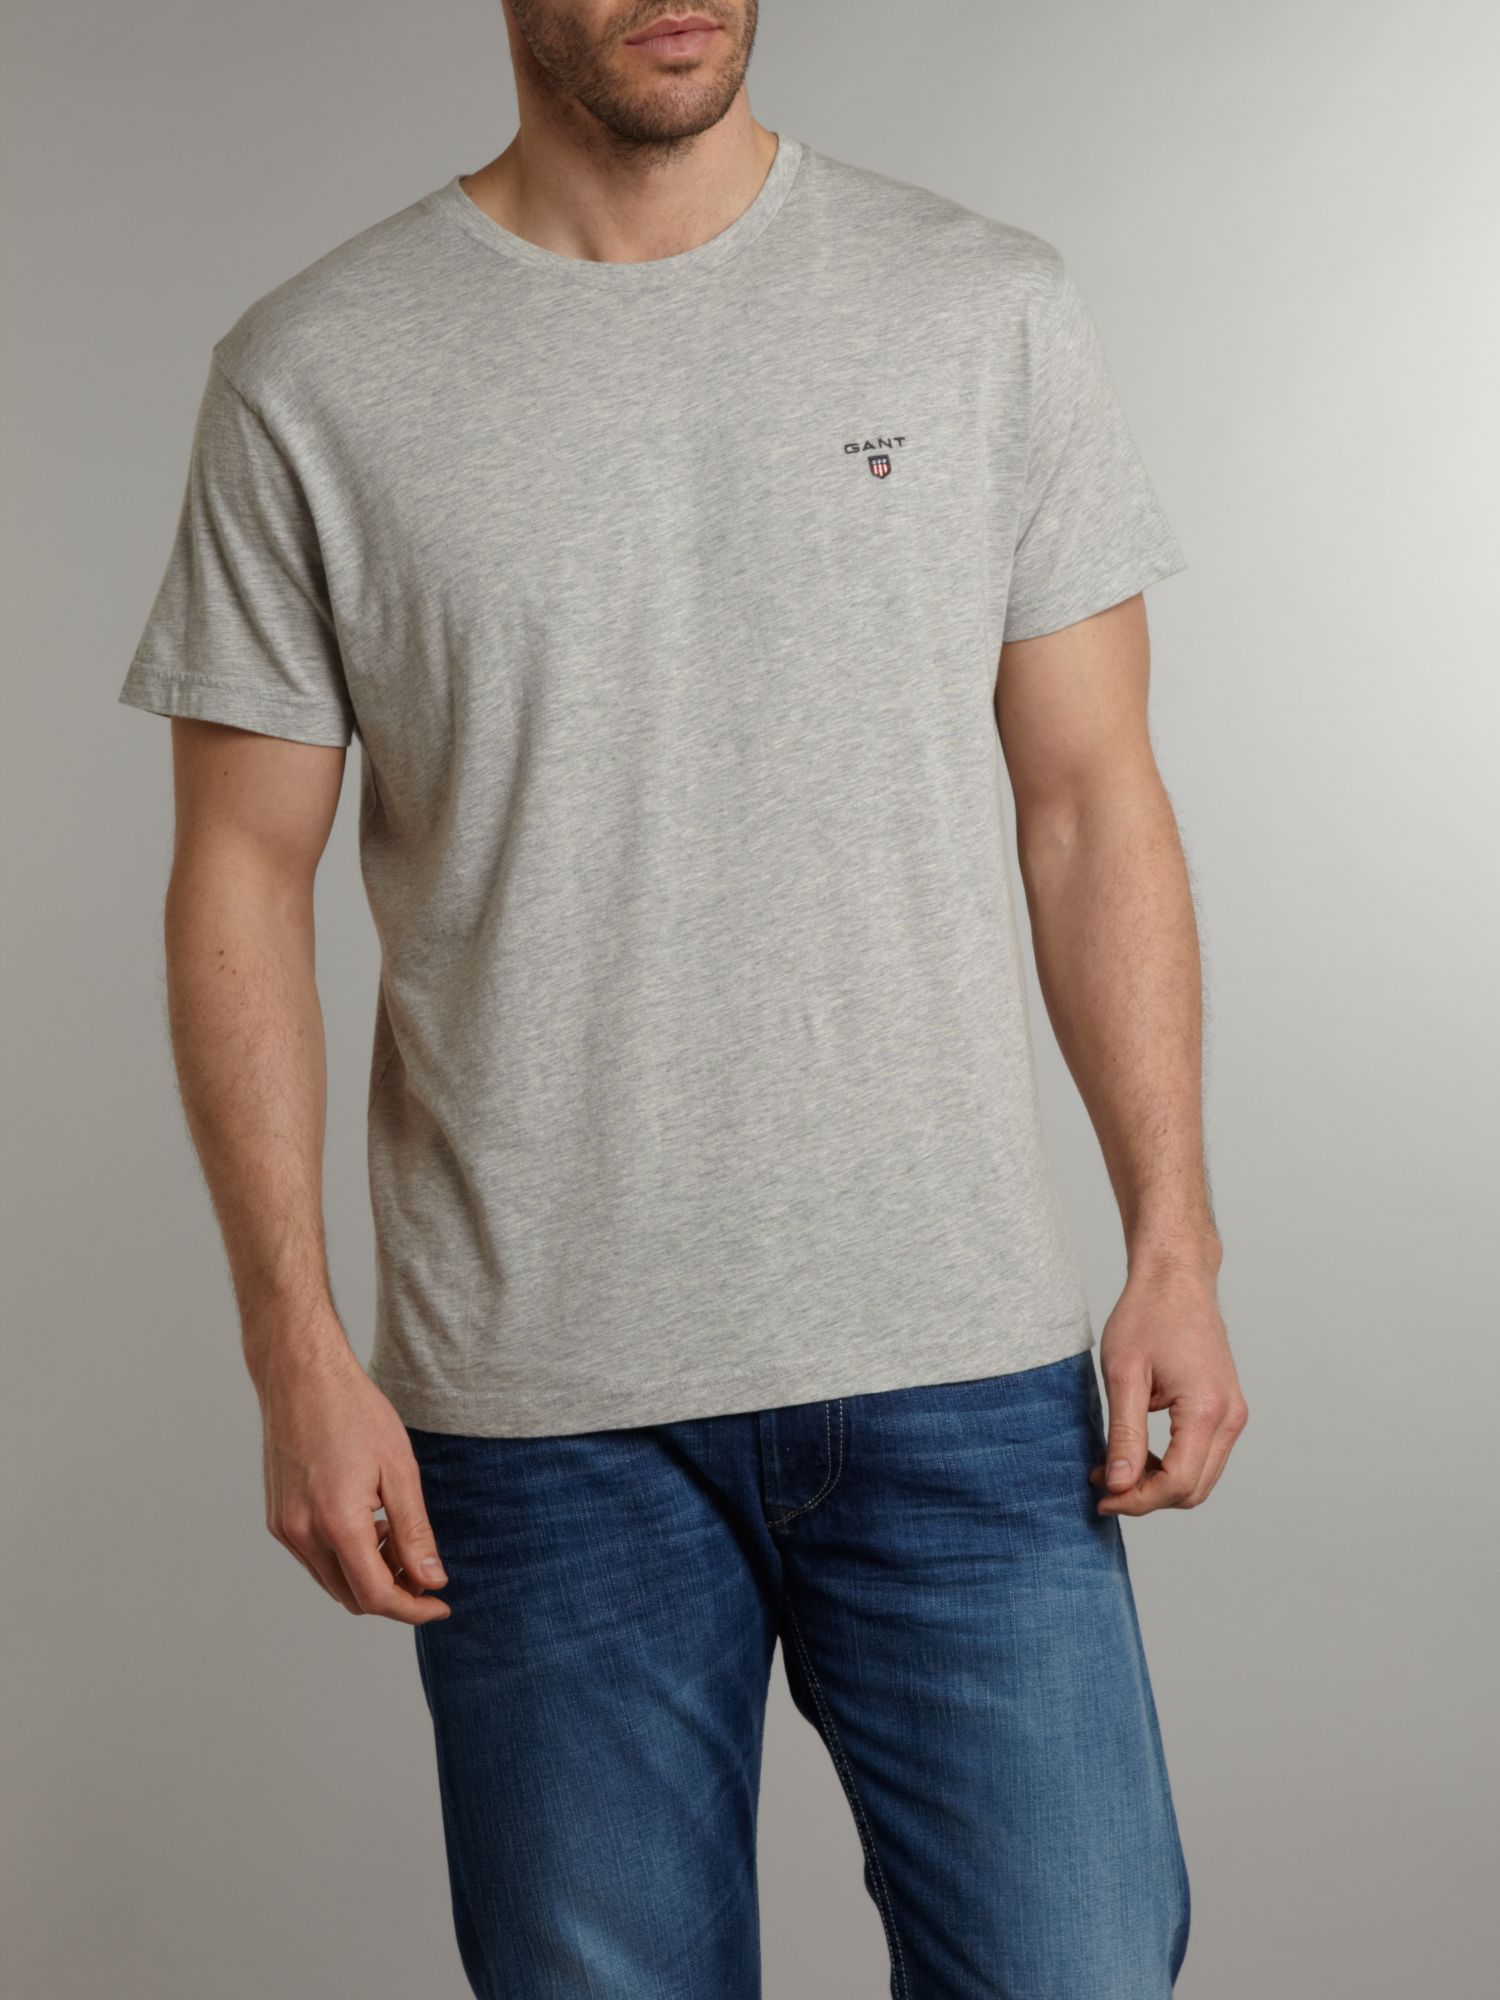 Short Sleeve crew t-shirt